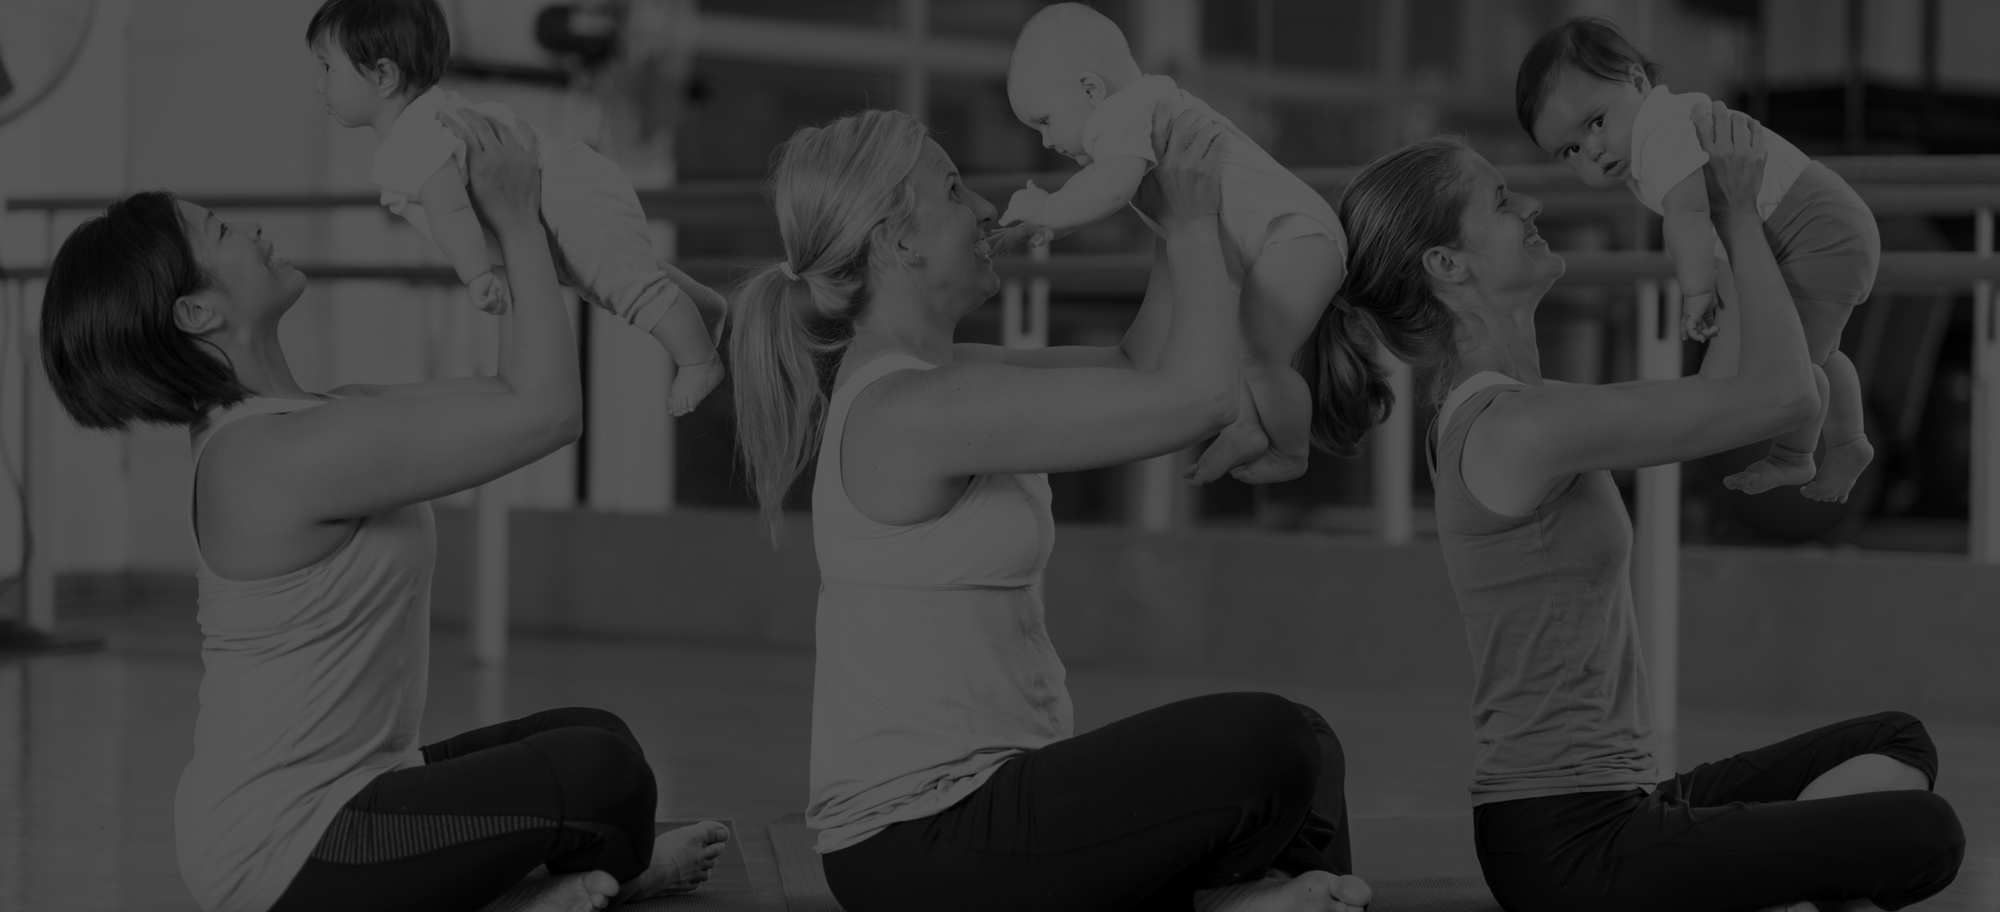 So I am going to share with you several huge reasons to play over again in your mind when the mommy guilt creeps in during your workout.